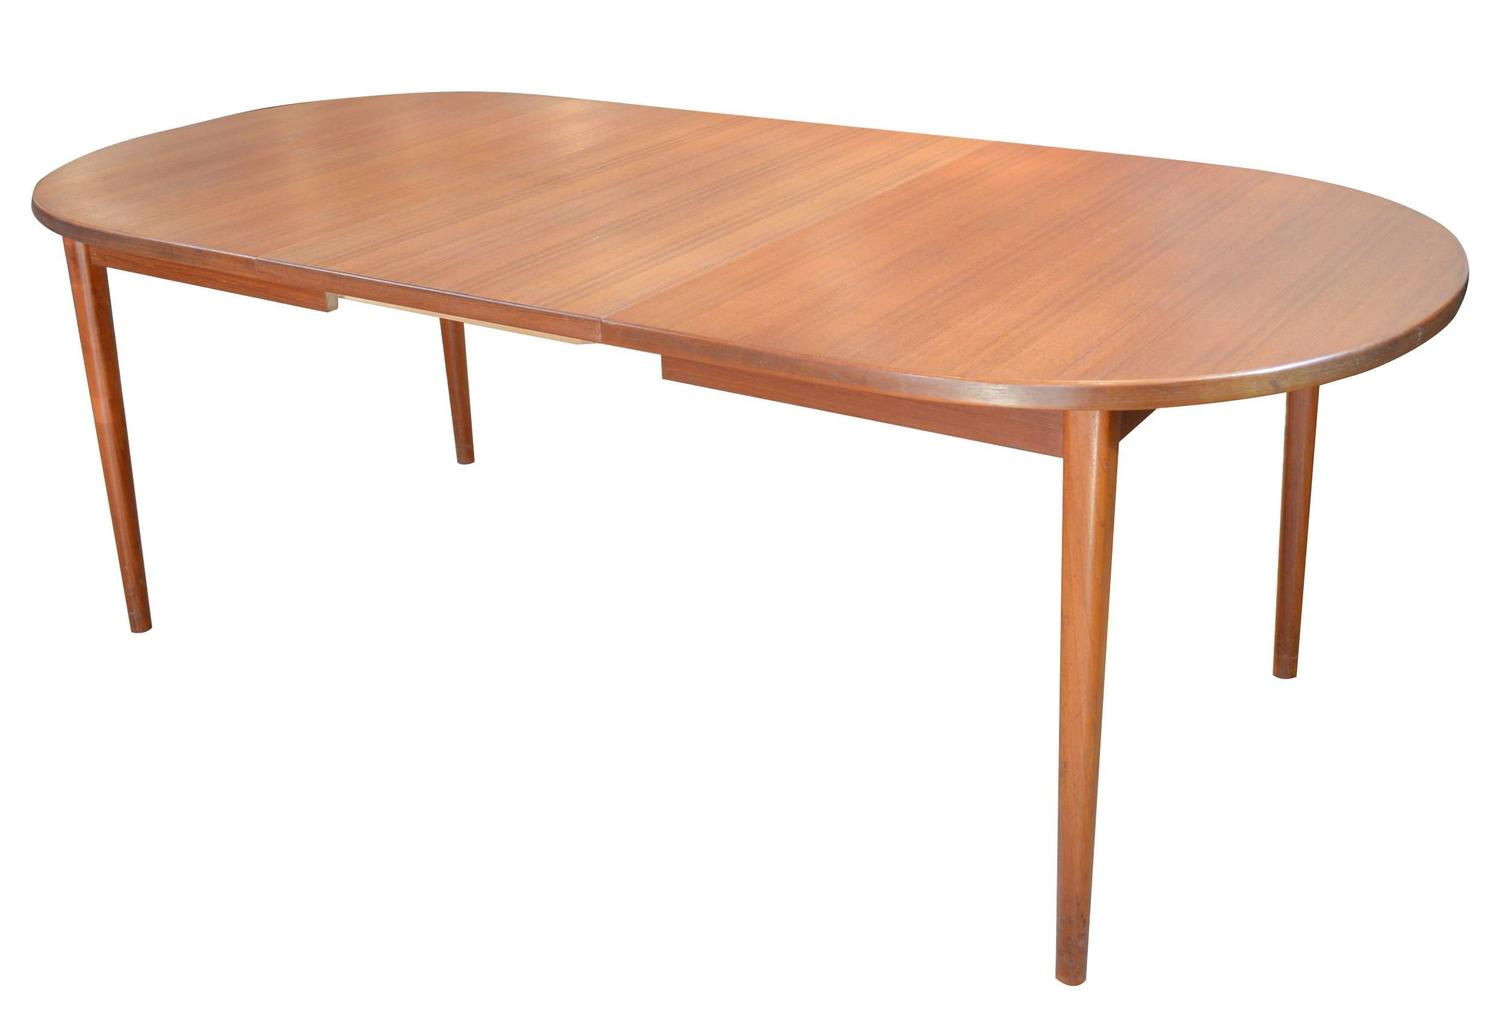 Nils Jonsson For Troeds Teak Dining Table With Two Leaves